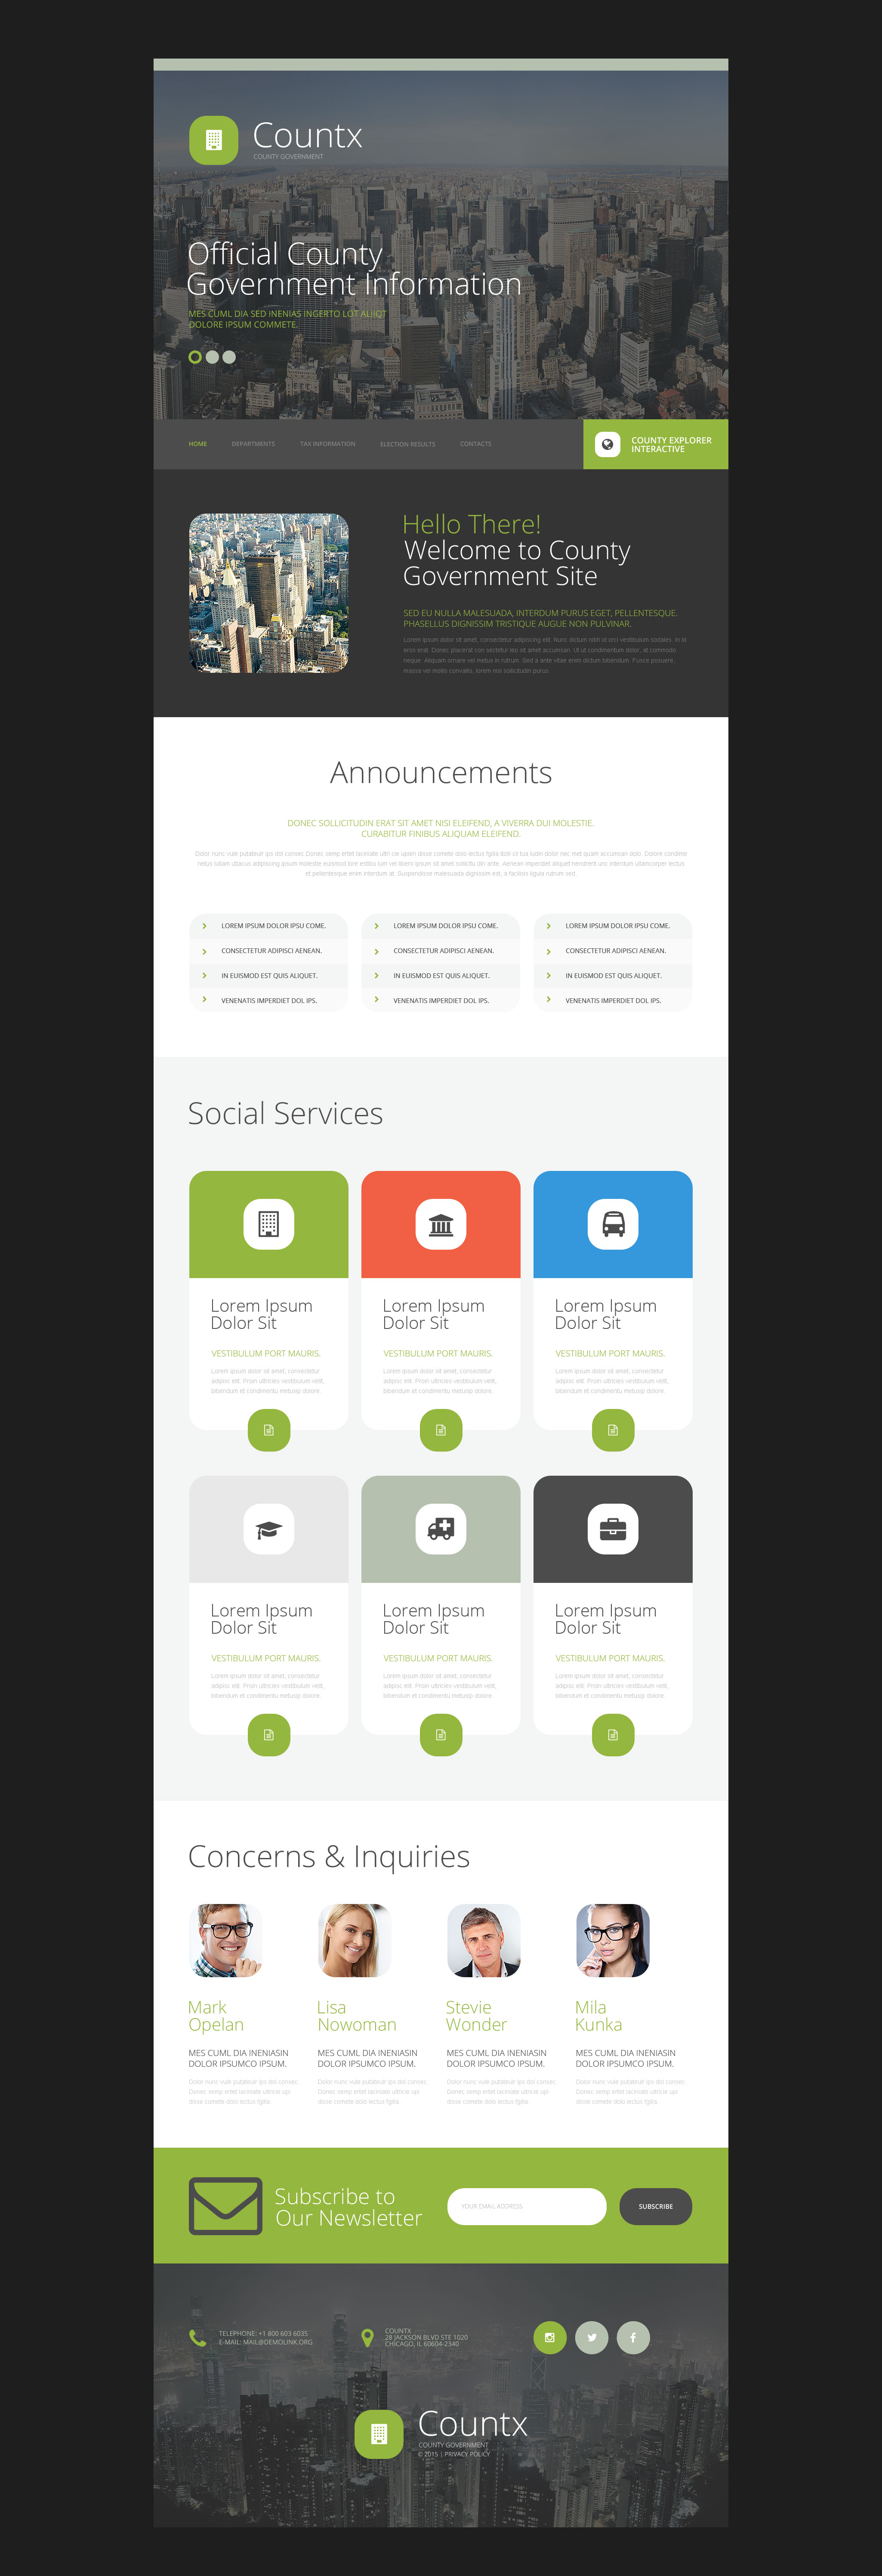 Countx Website Template